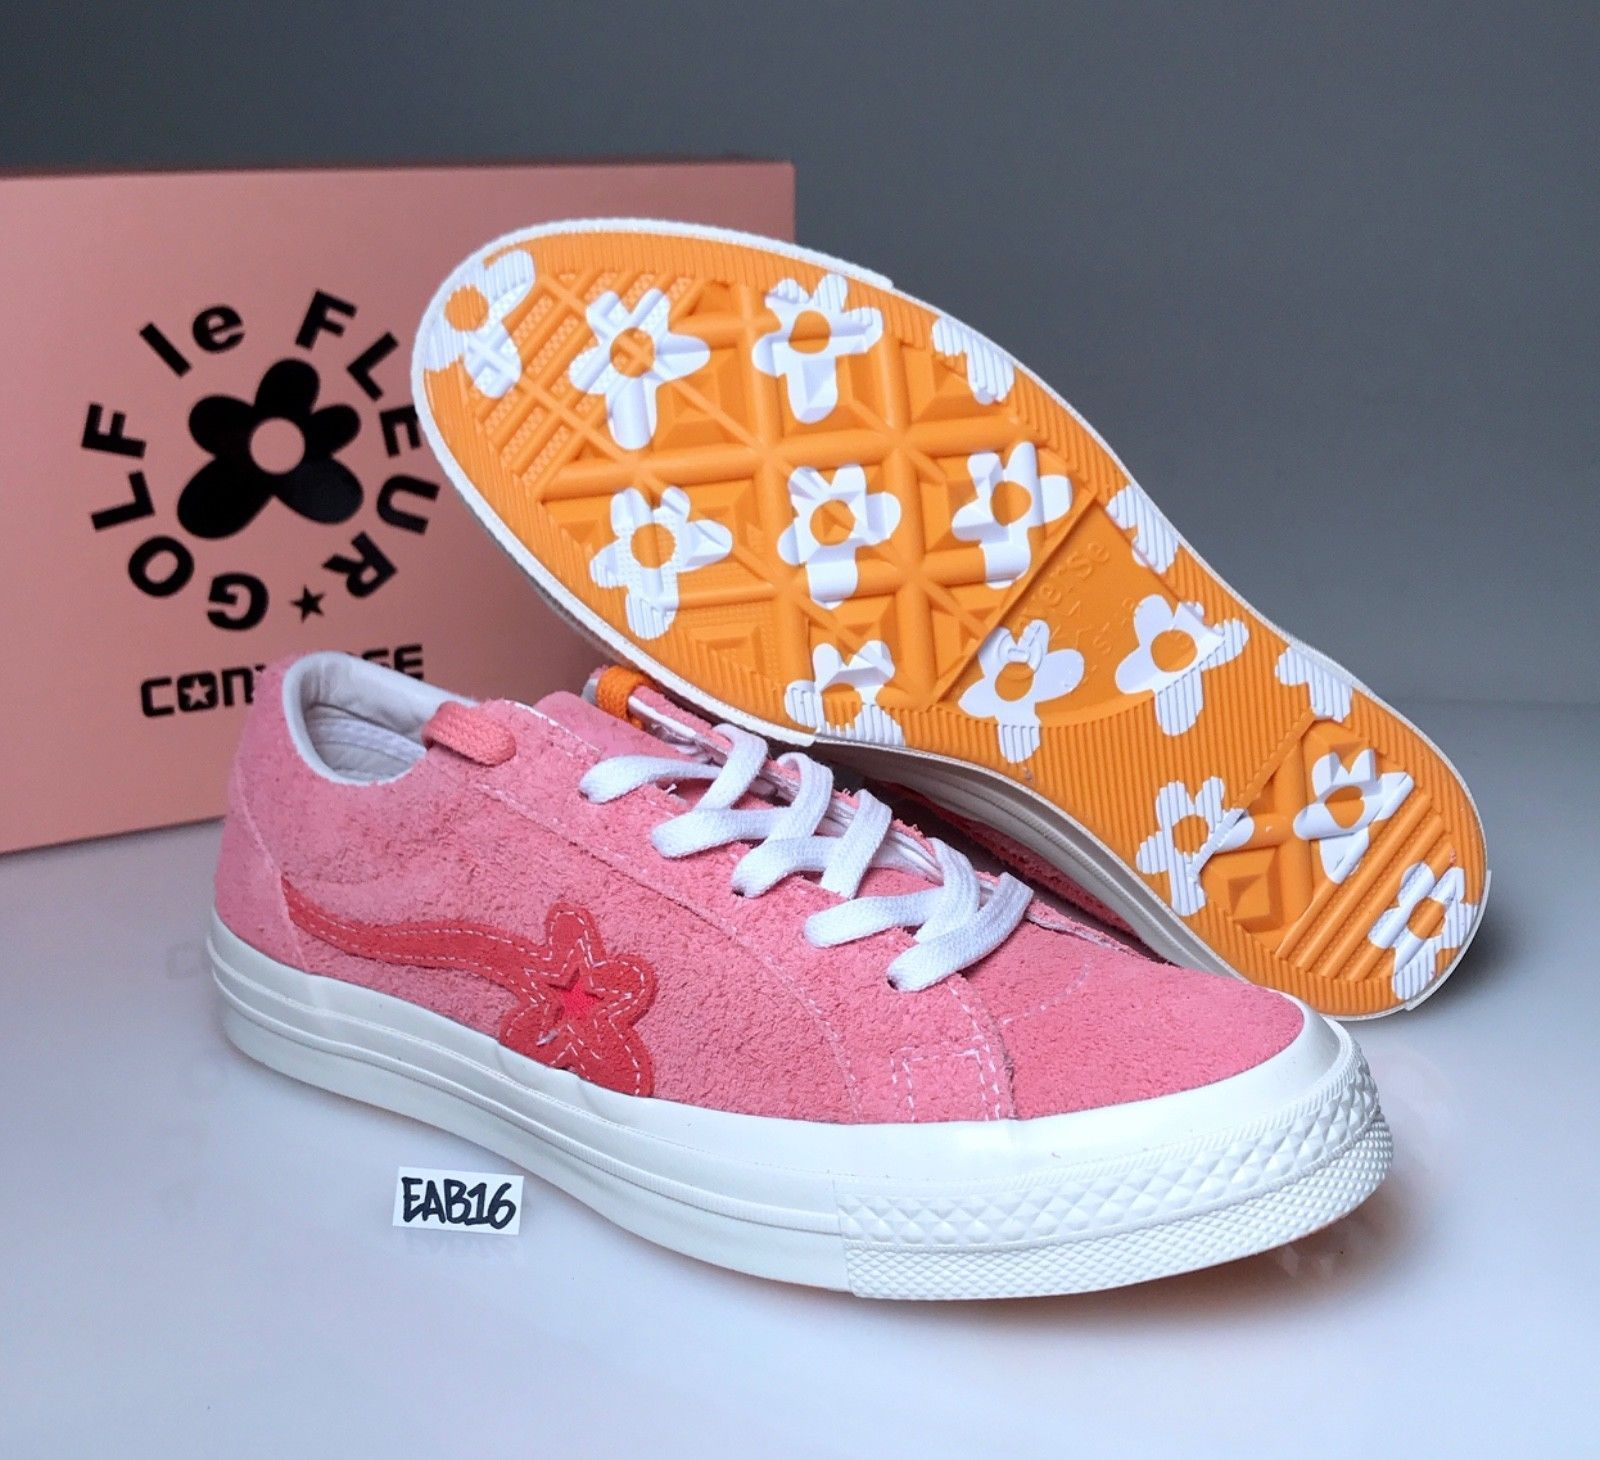 Converse One Star X Golf Wang Le Fleur Suede Geranium Pink Tyler The Creator Hype Shoes Sneakers Golf Wang